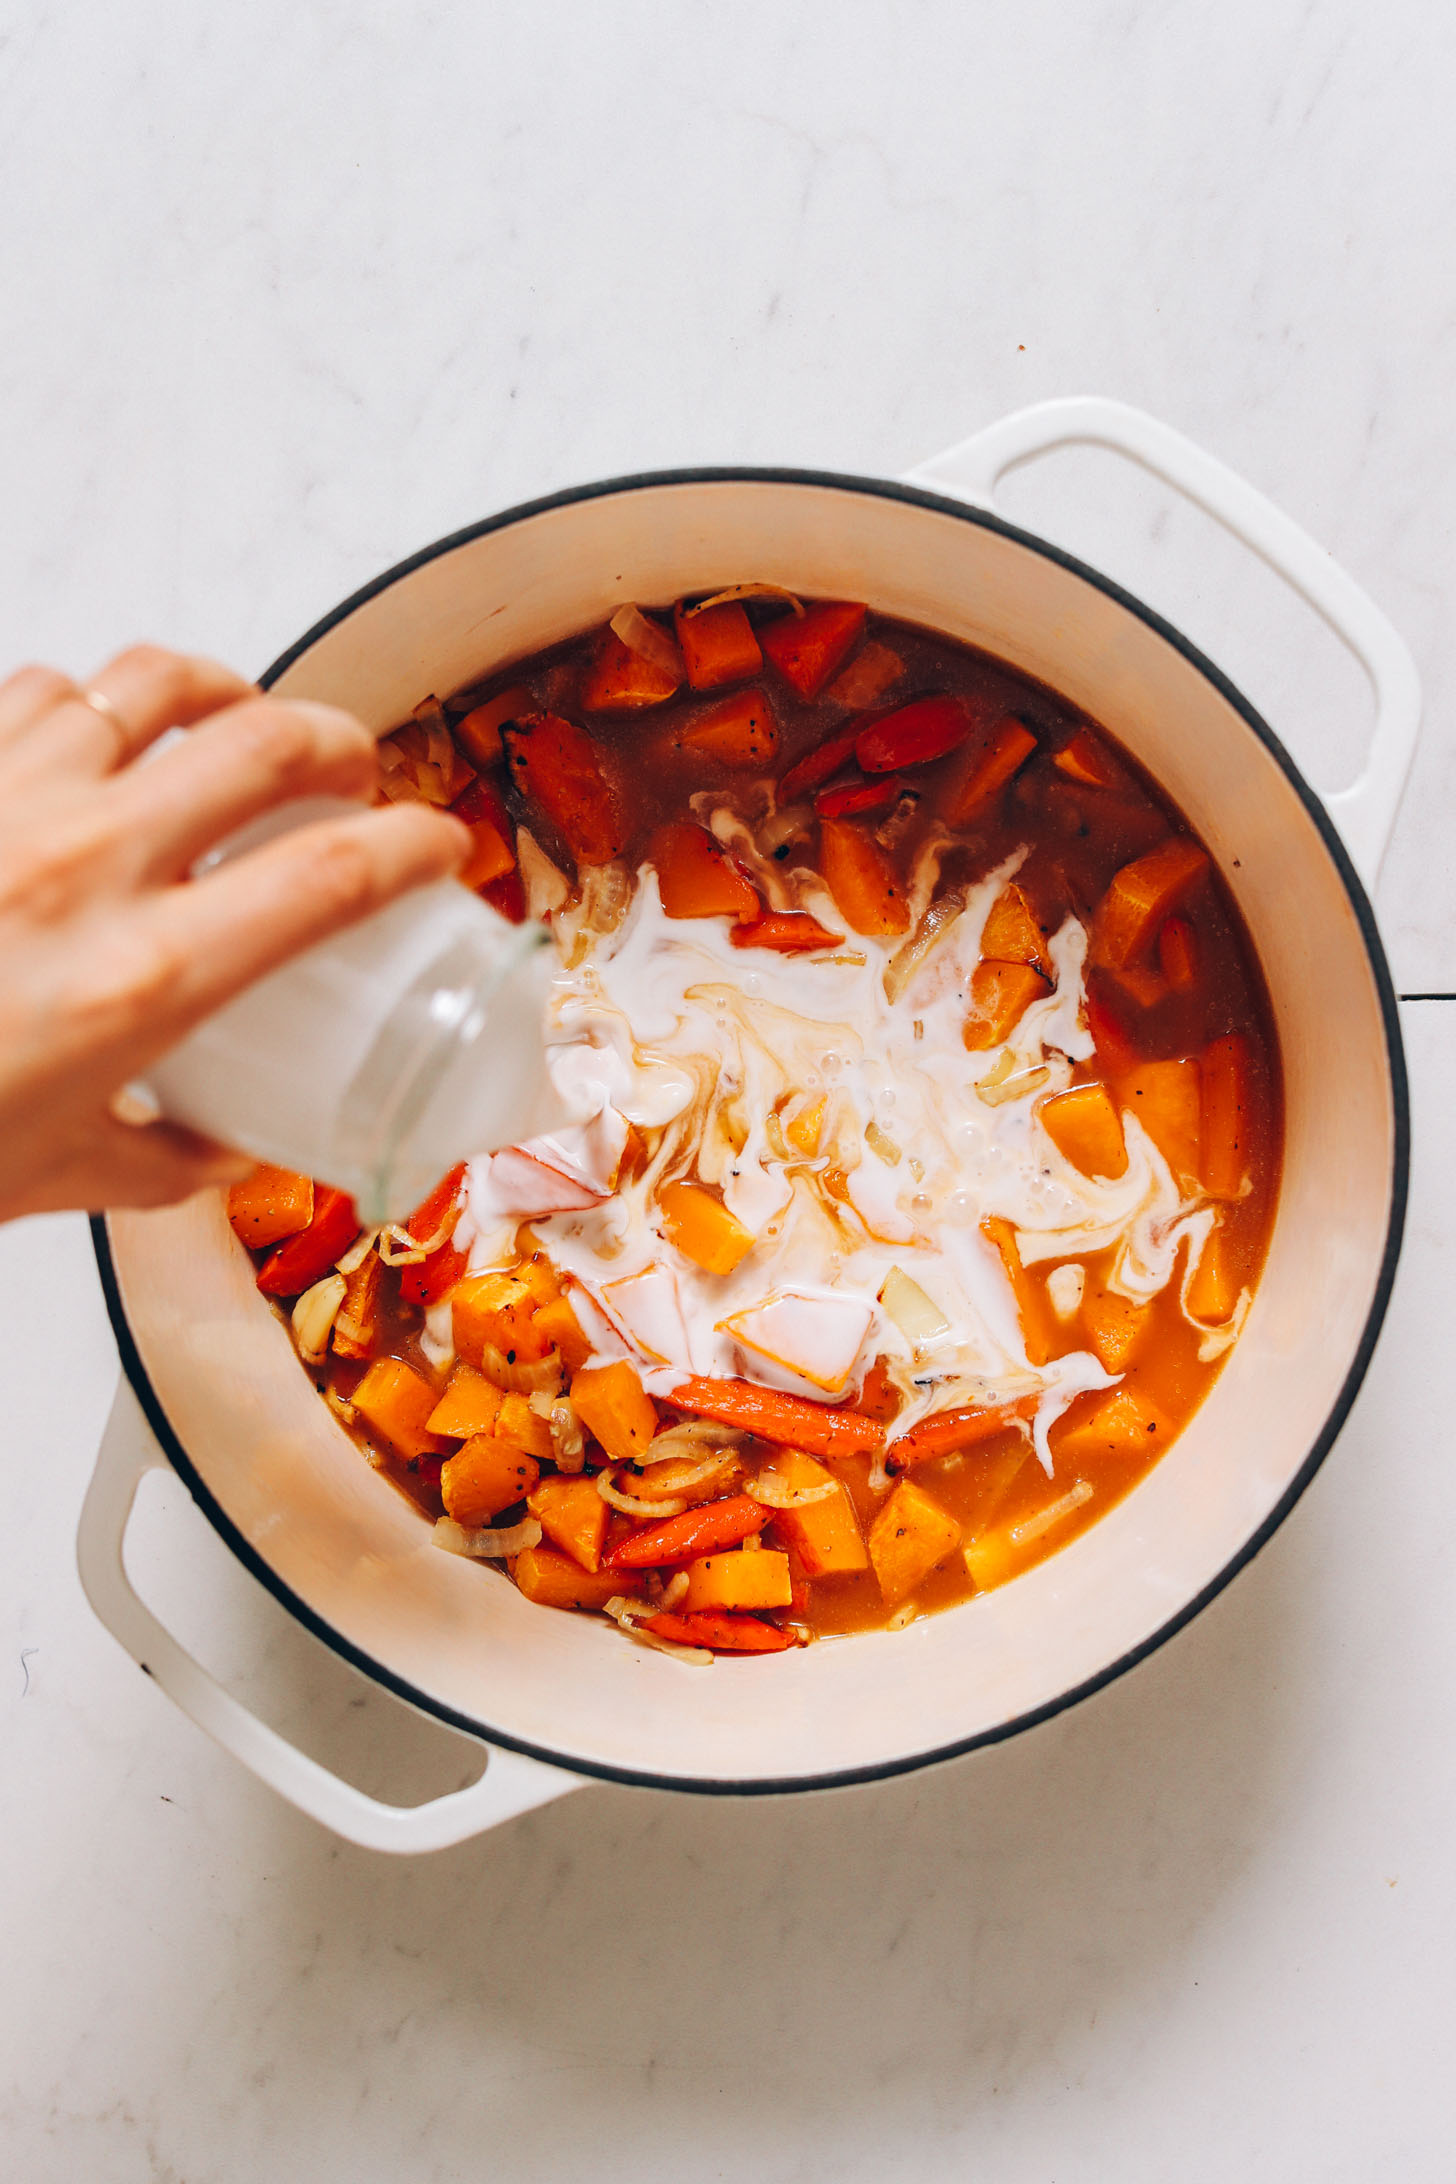 Pouring coconut milk into a pot with carrots, butternut squash, garlic, onion, and vegetable broth